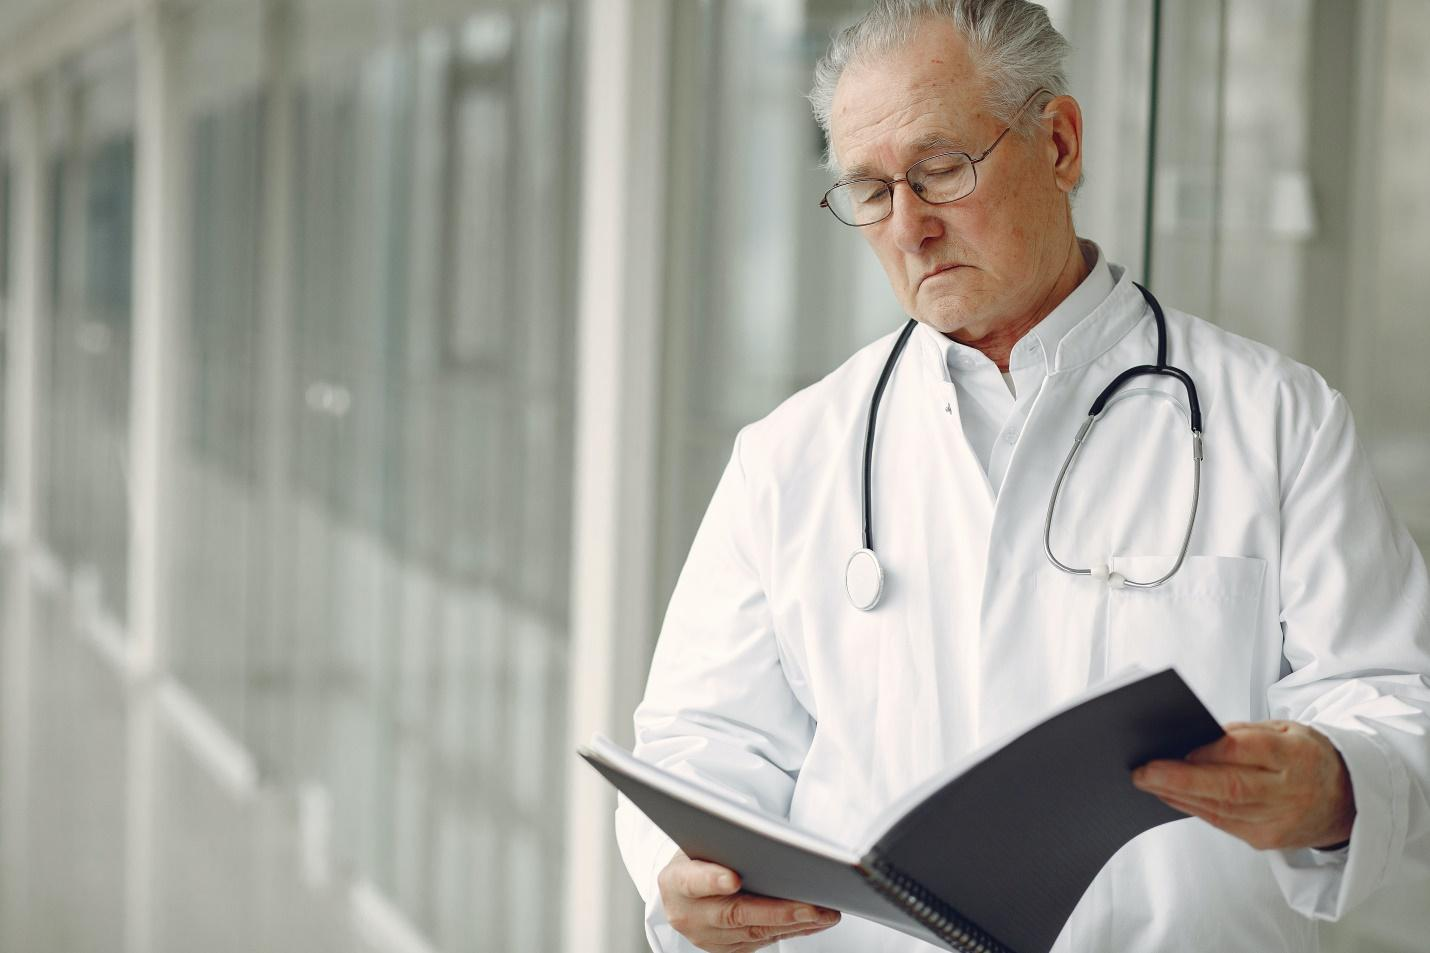 A physician reading patient records